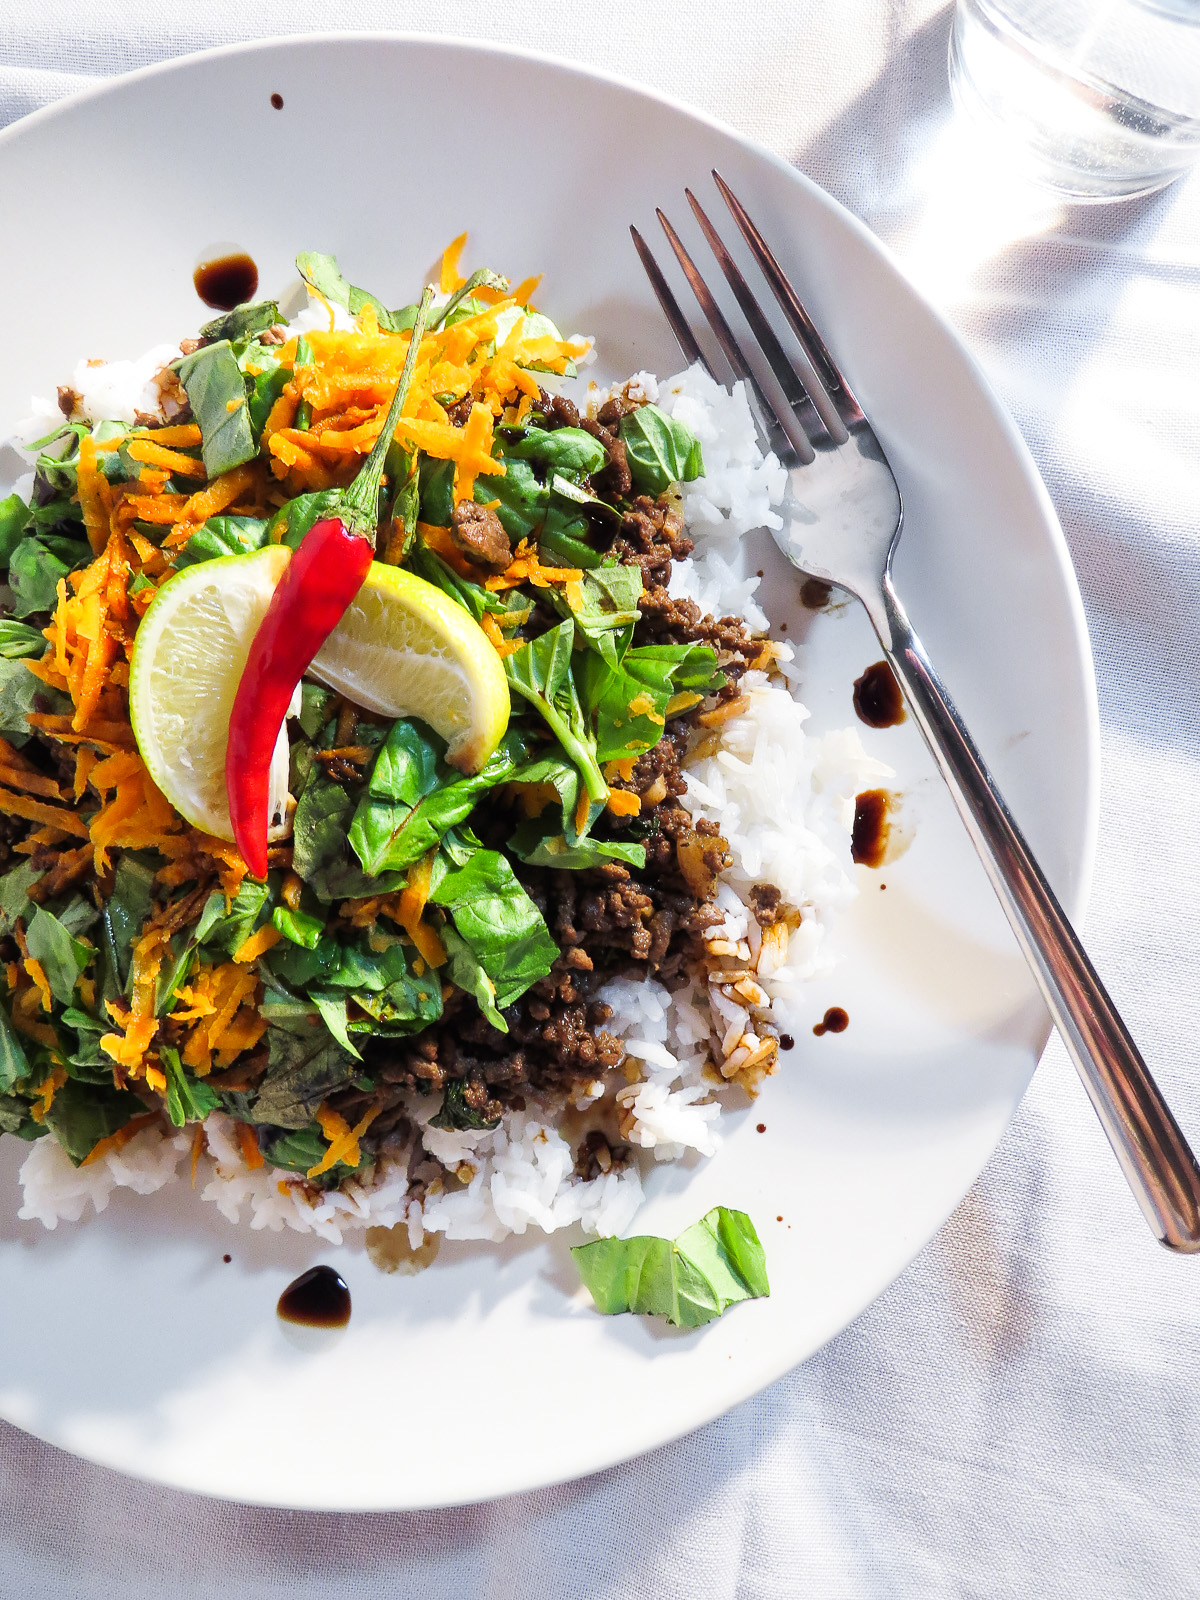 Thai Chilli Basil Beef - Super in love with the Thai red chilli and basil combo! In this recipe the two come together with garlic in a yummy beef dish seasoned with soy and topped with a carrot and basil salad! ALL THE NOMS!